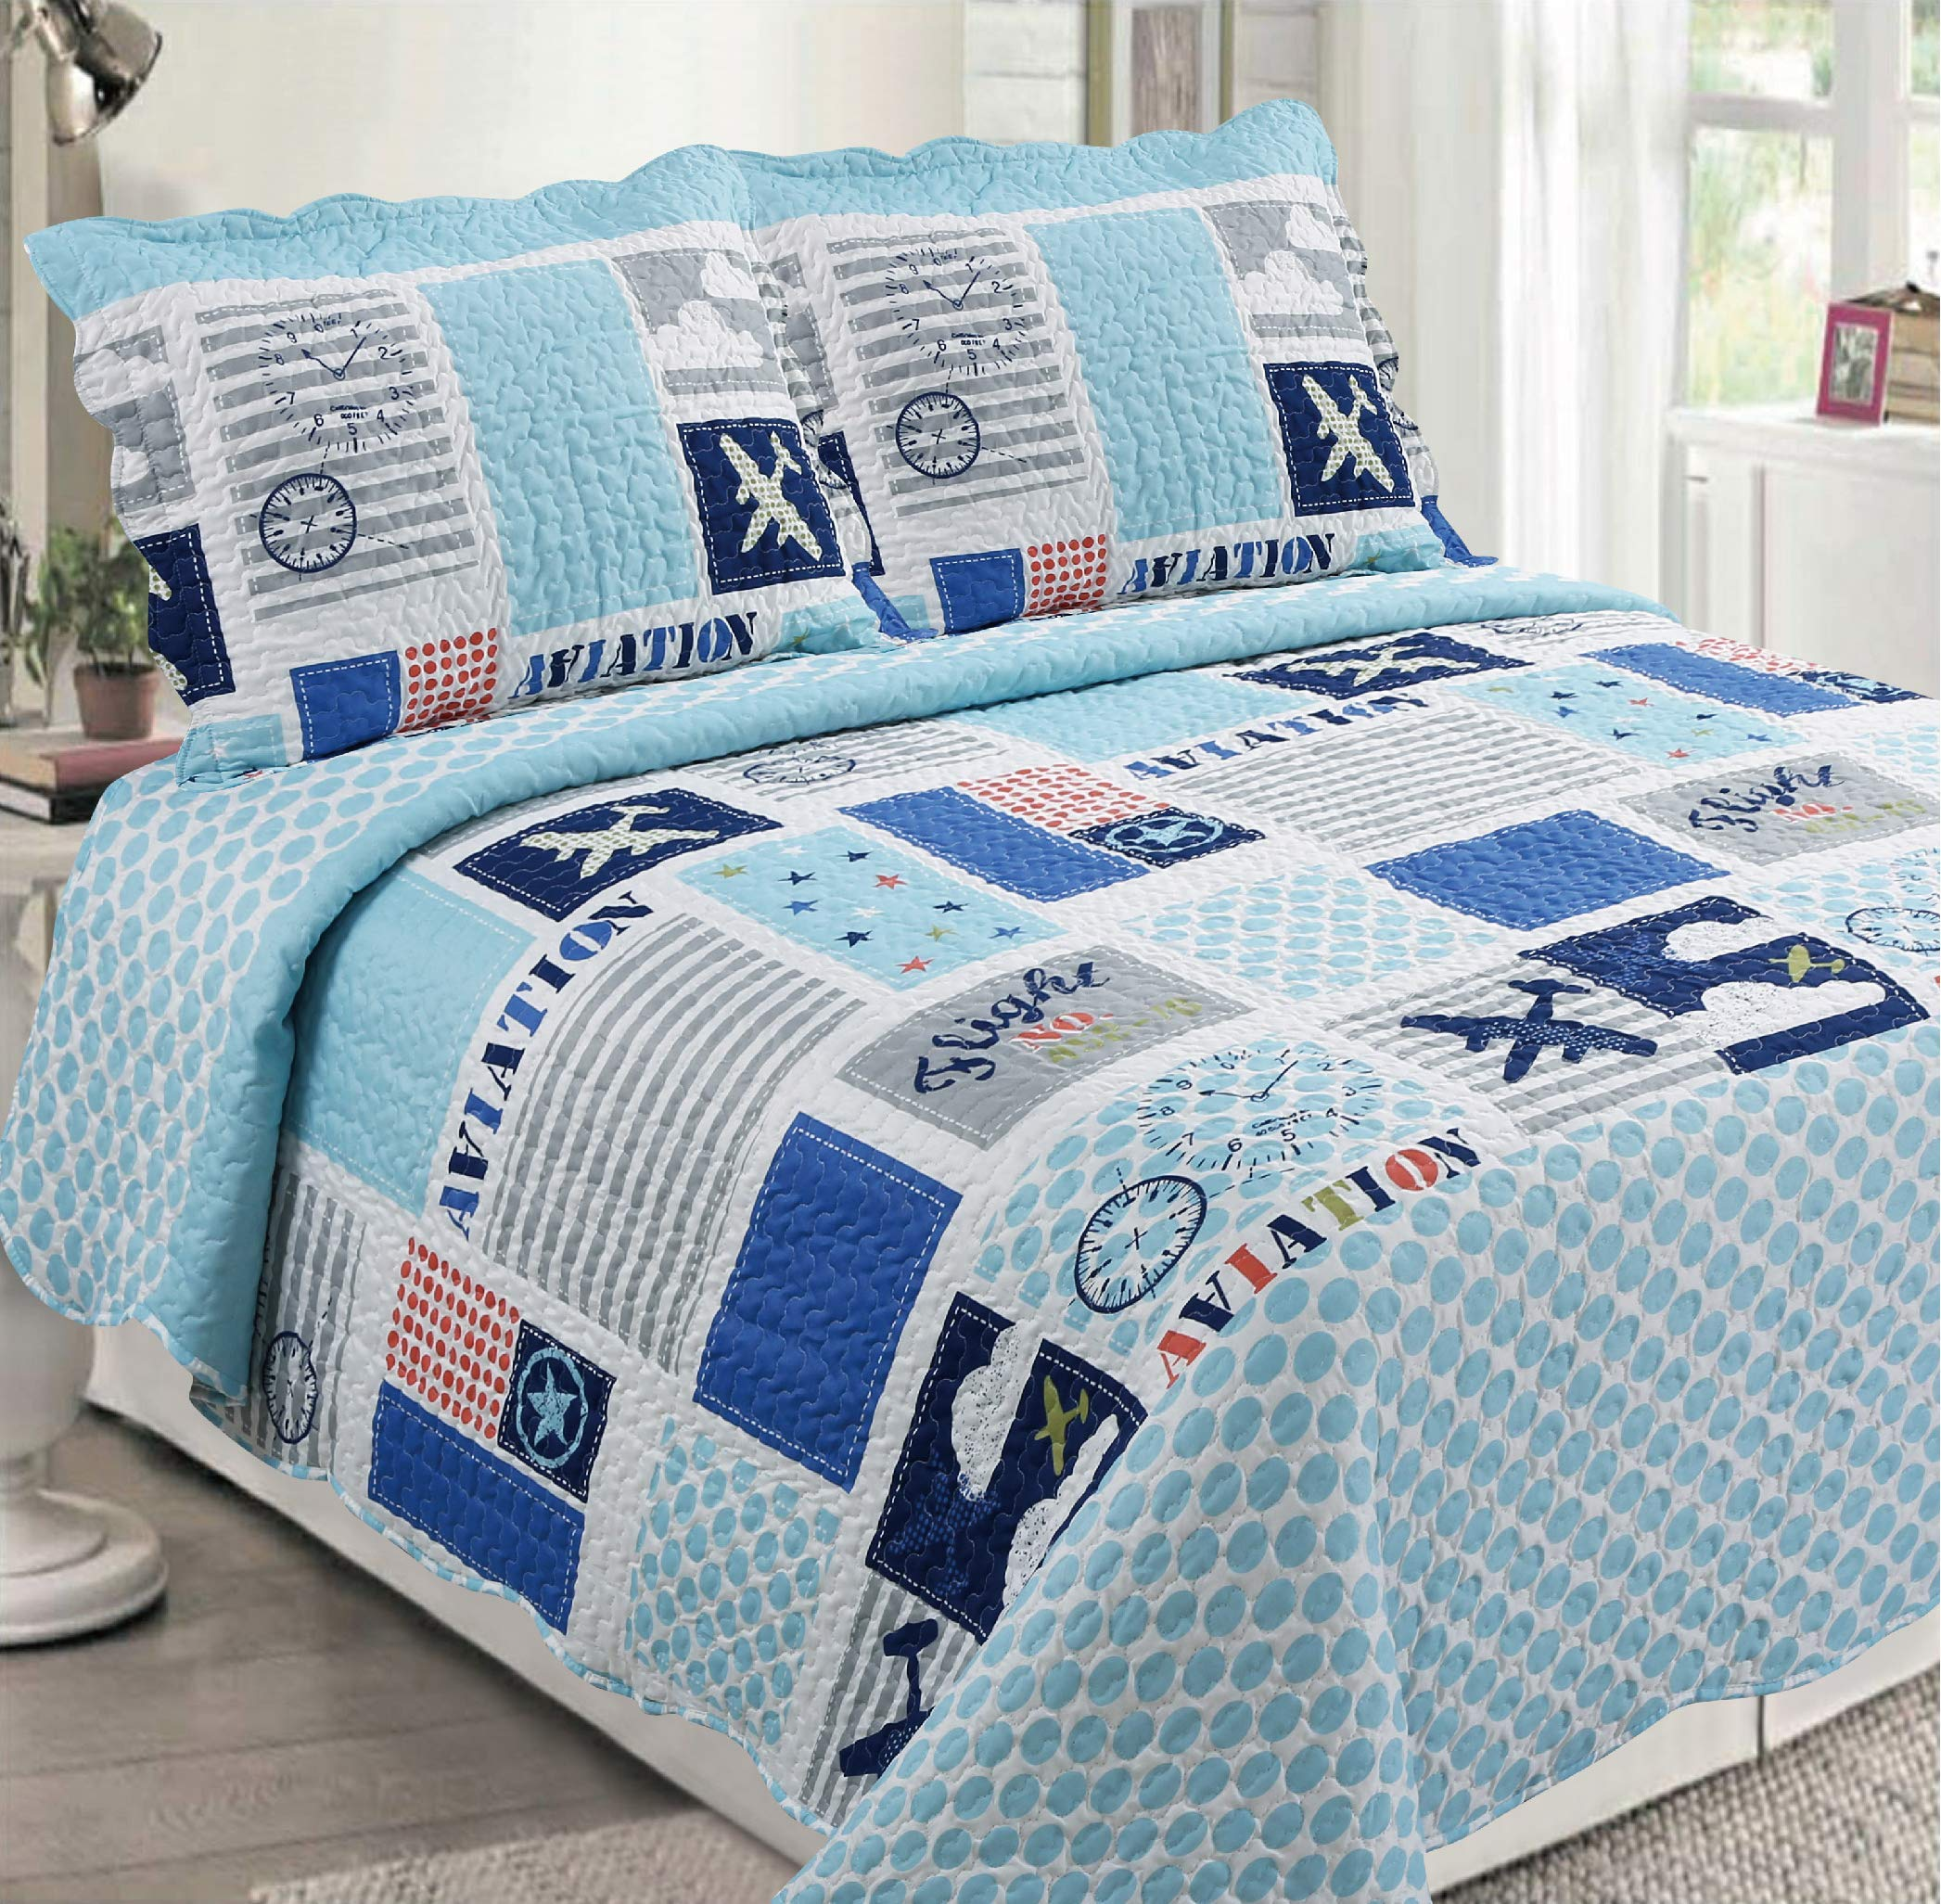 Golden Linens 3 pcs (1 Quilt, 2 Pillow Cases) Bedspread Kids Quilt Multicolor White, Blue, Light Blue Grey Aviation, Military Airplane# Full Airplane (99)